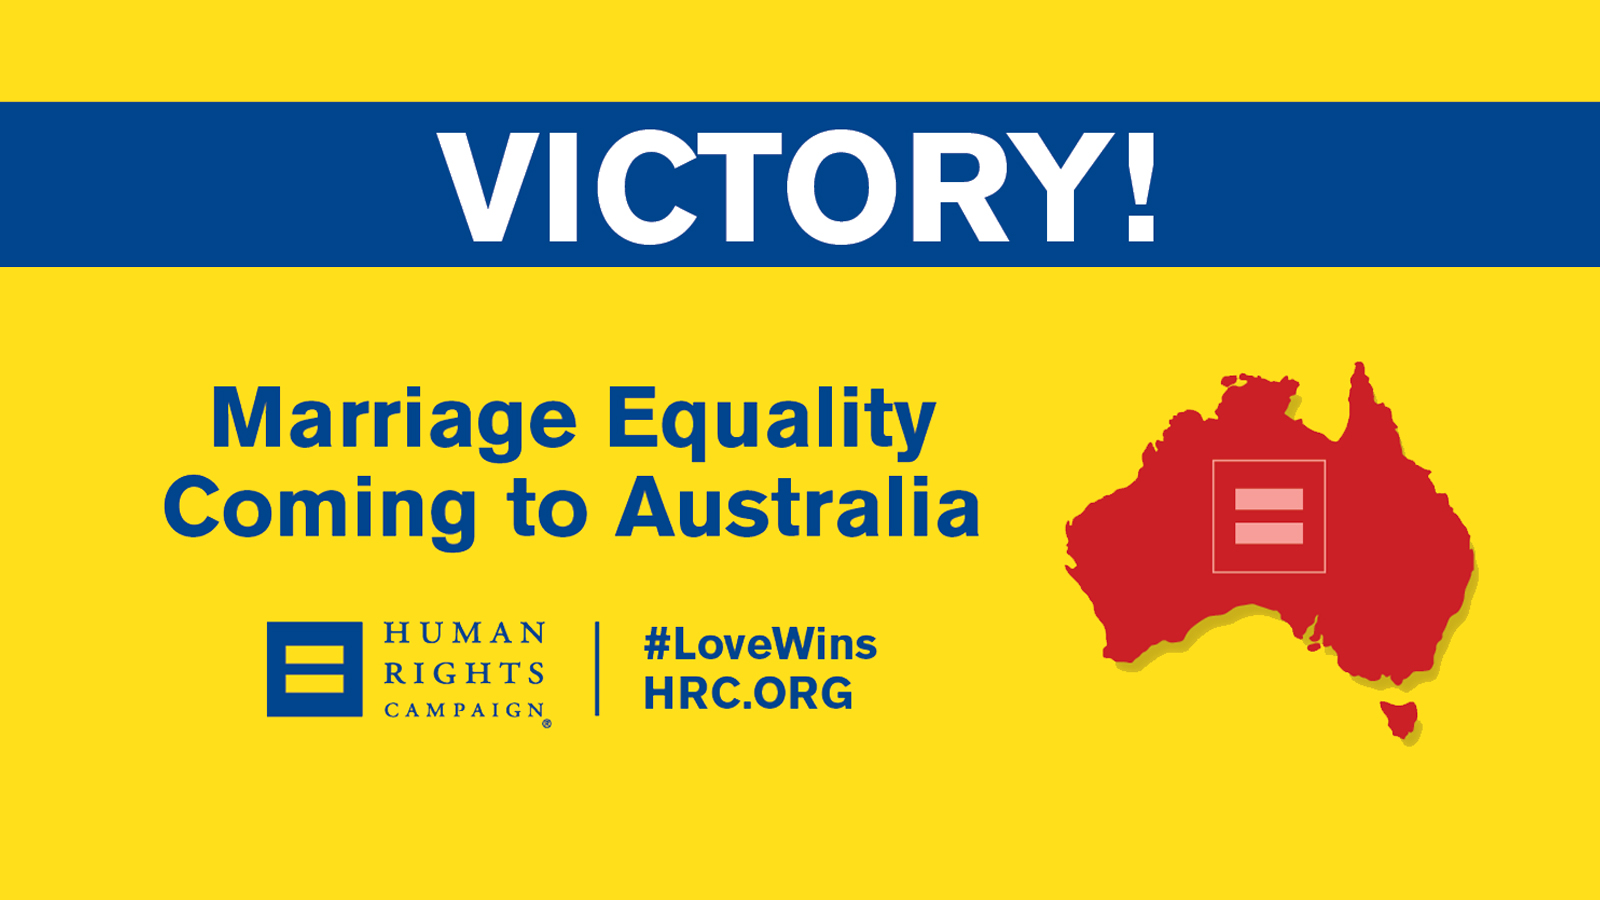 BREAKING: Australia to Become 25th Country With Marriage Equality